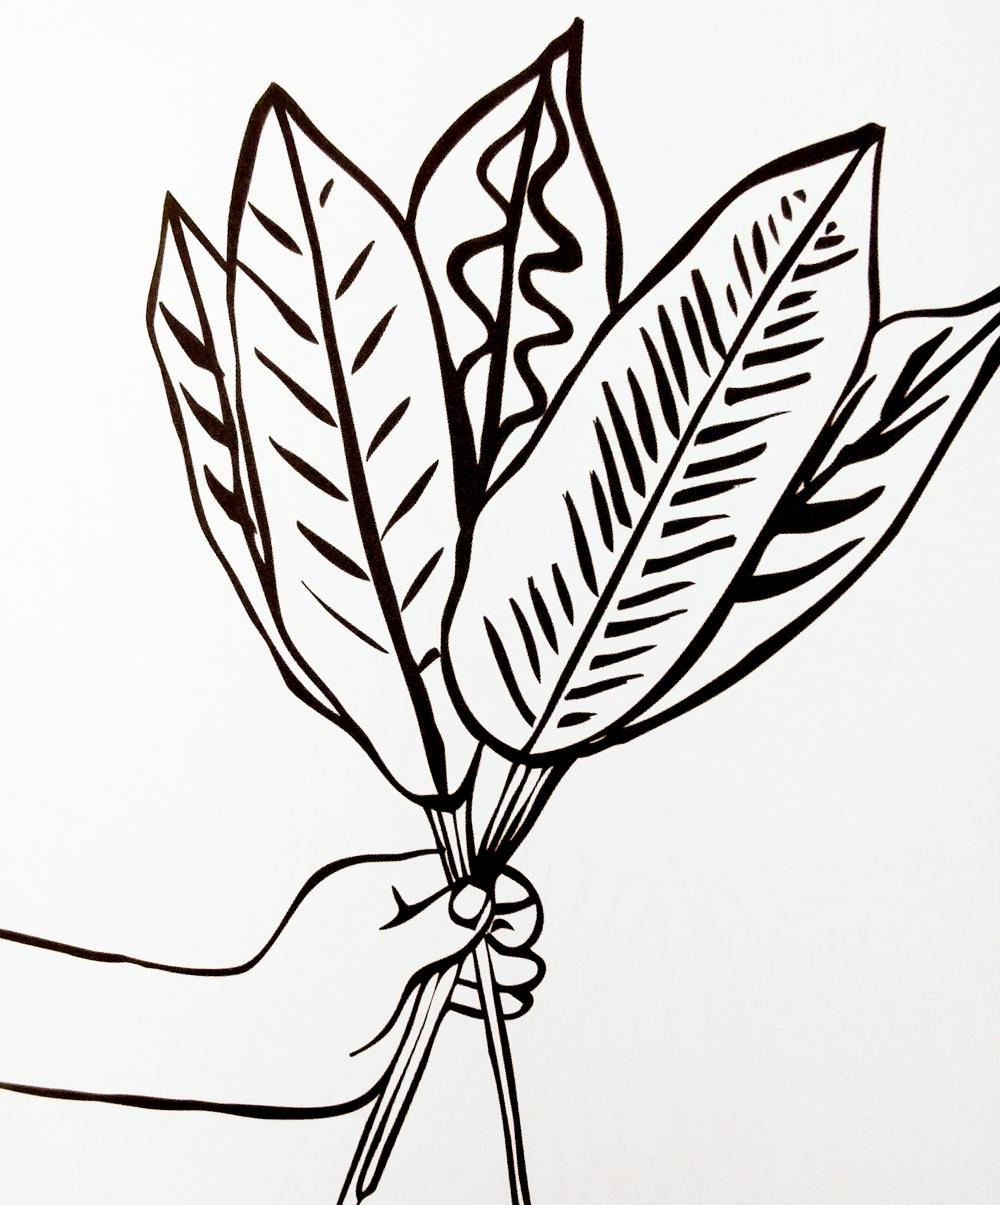 A not-yet-coloured-in page from W+P+P featuring a fist full of beautiful leaves